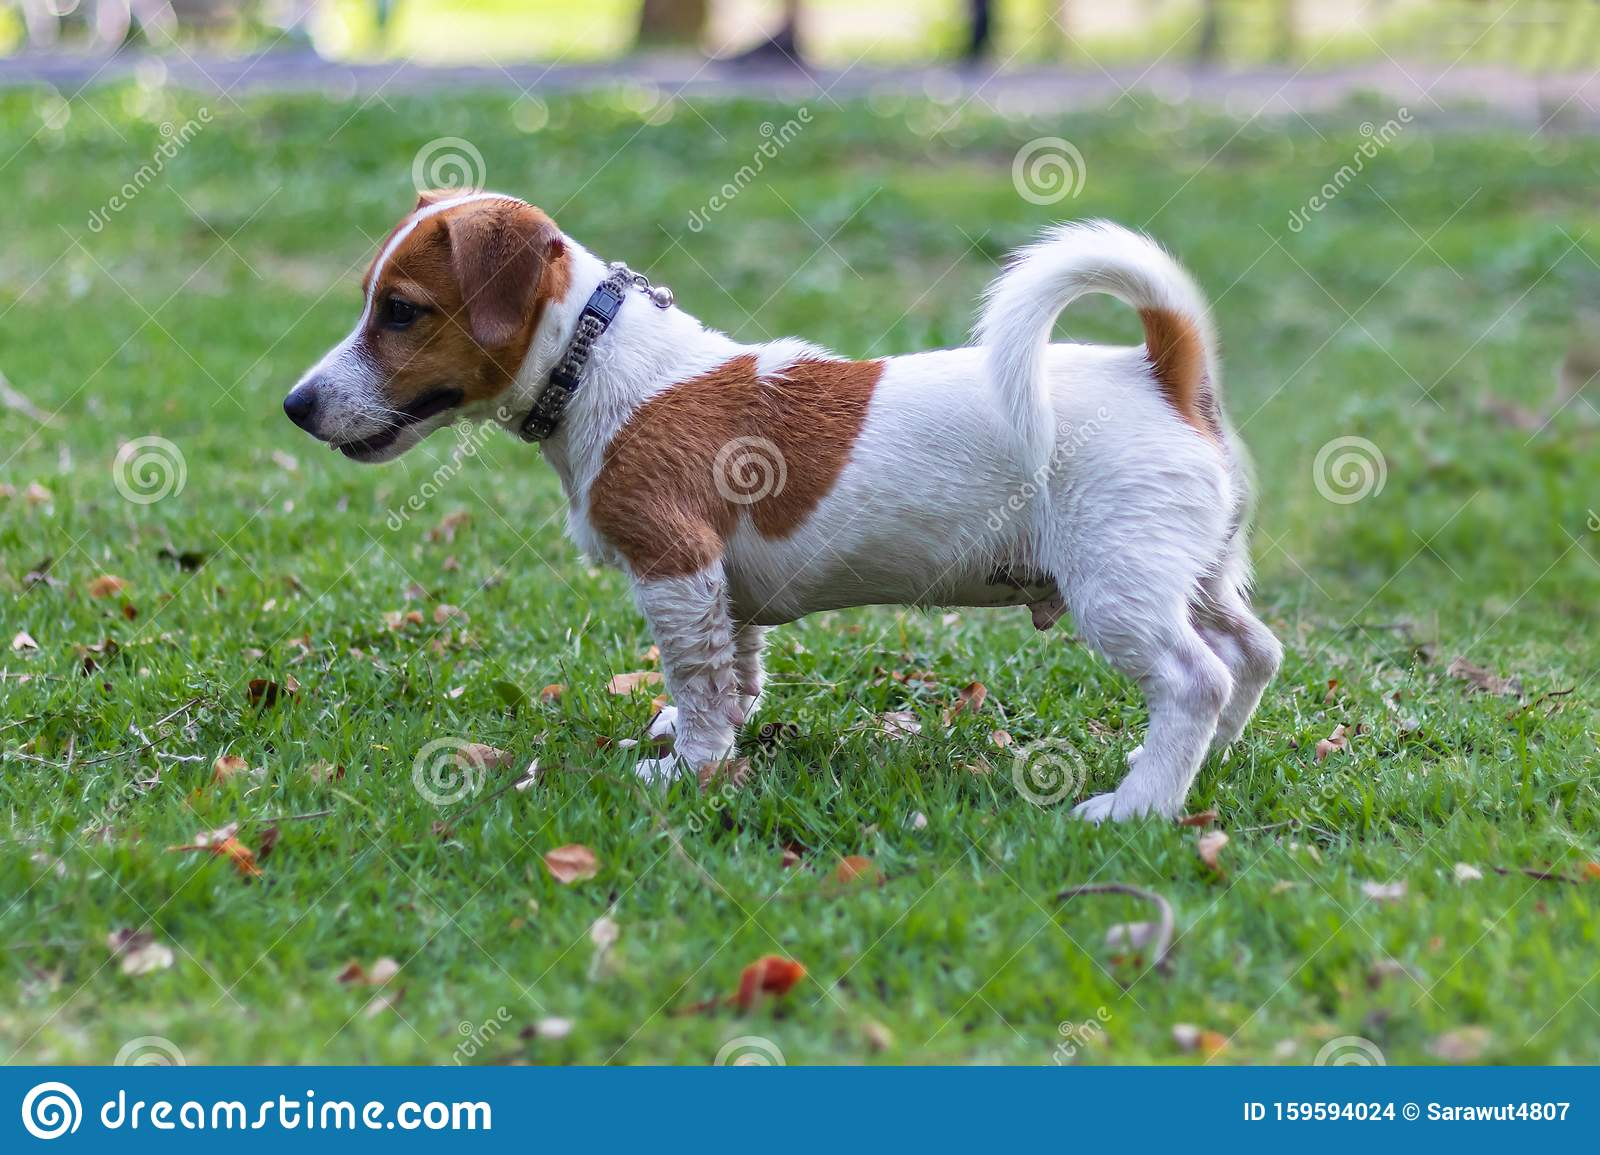 Jack Russell Terrier Puppies Playing The Green Park Stock Photo Image Of Green Brown 159594024